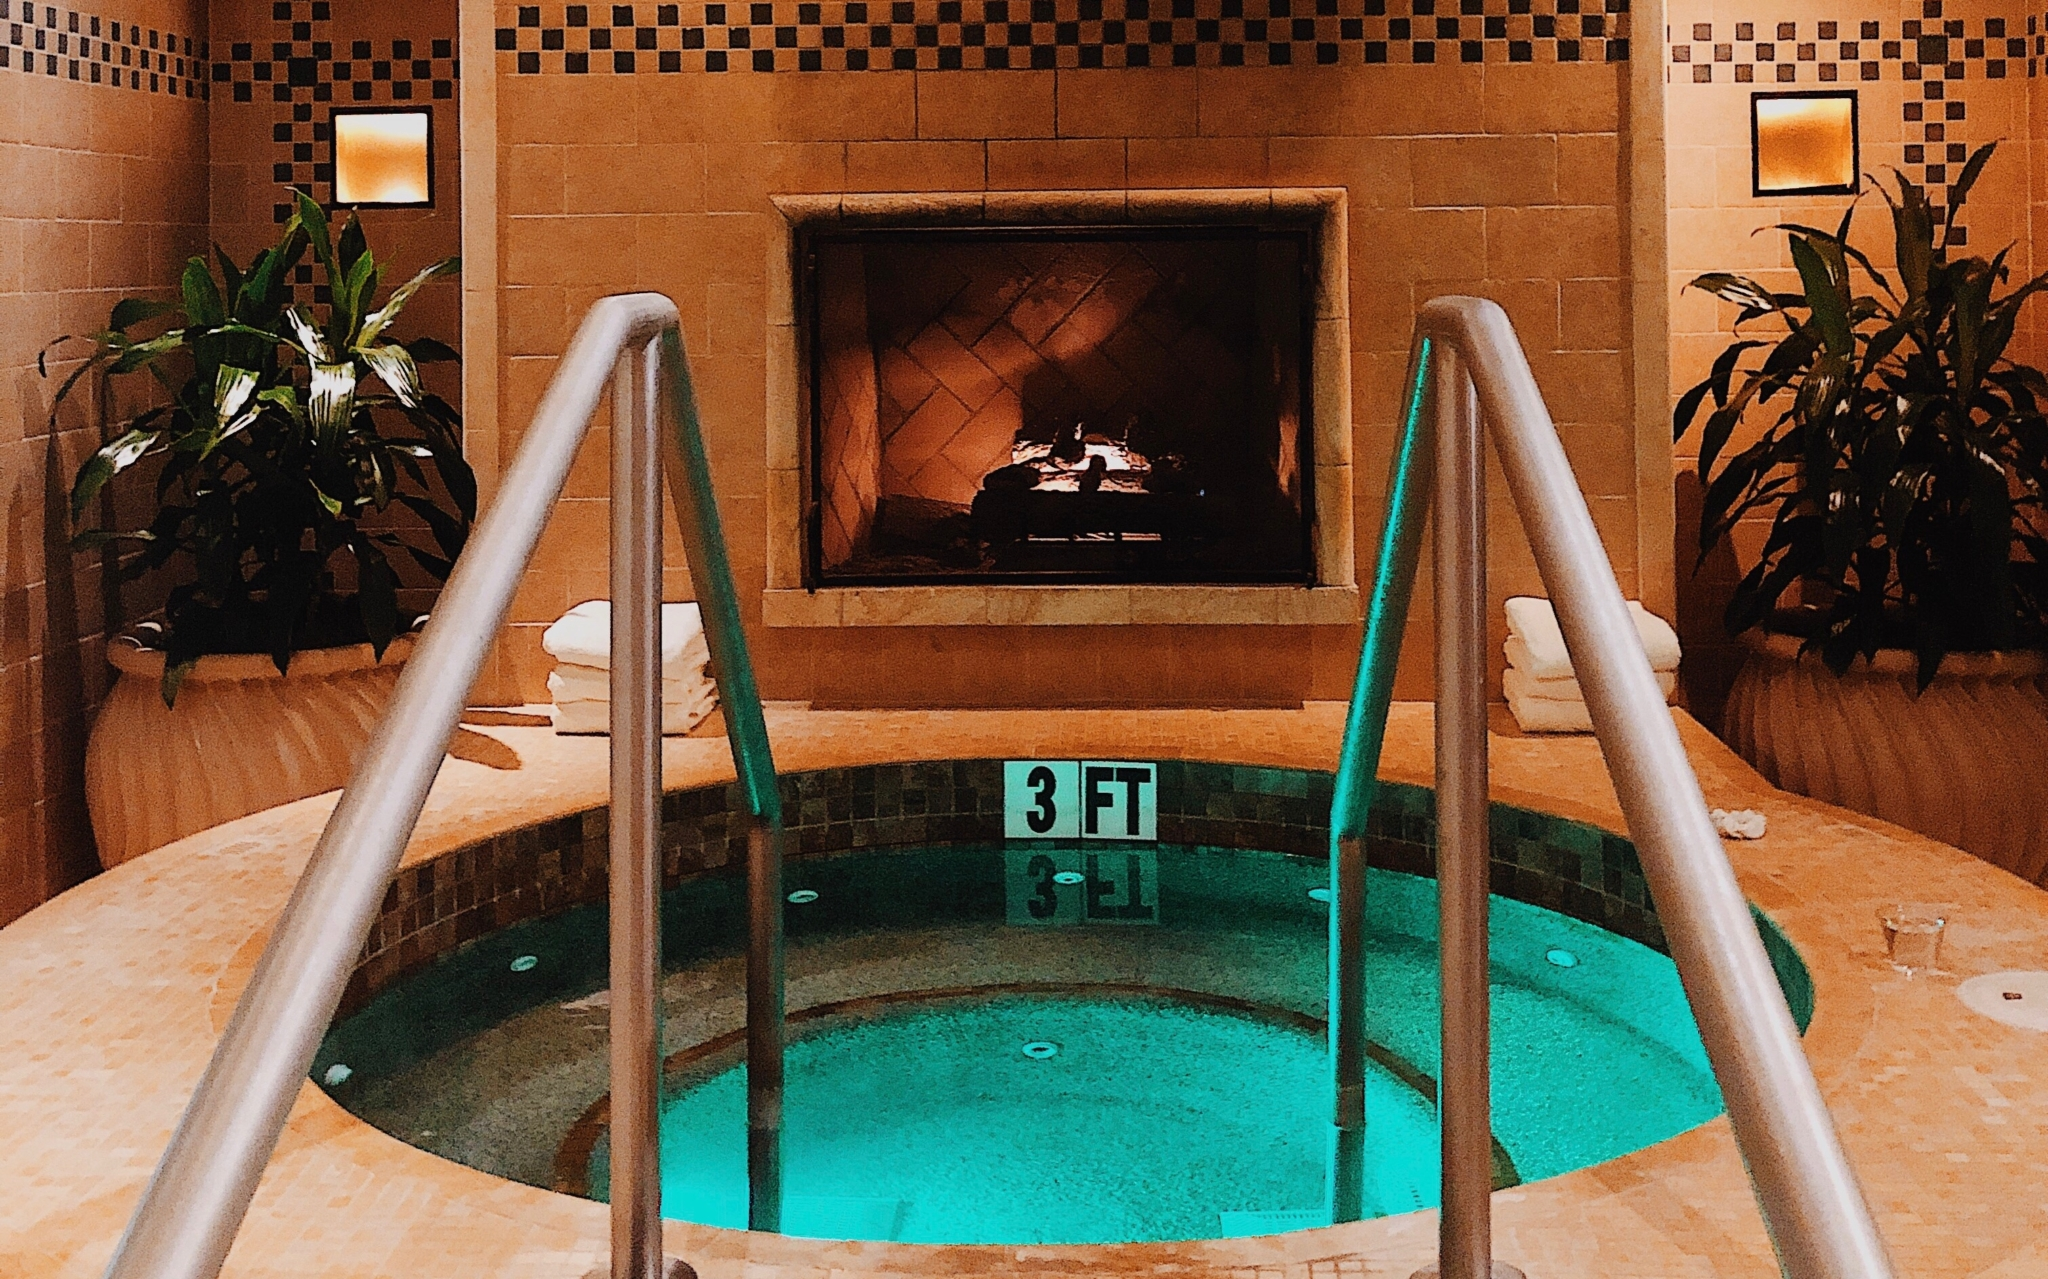 5 Birmingham spas you should visit to unwind and relax